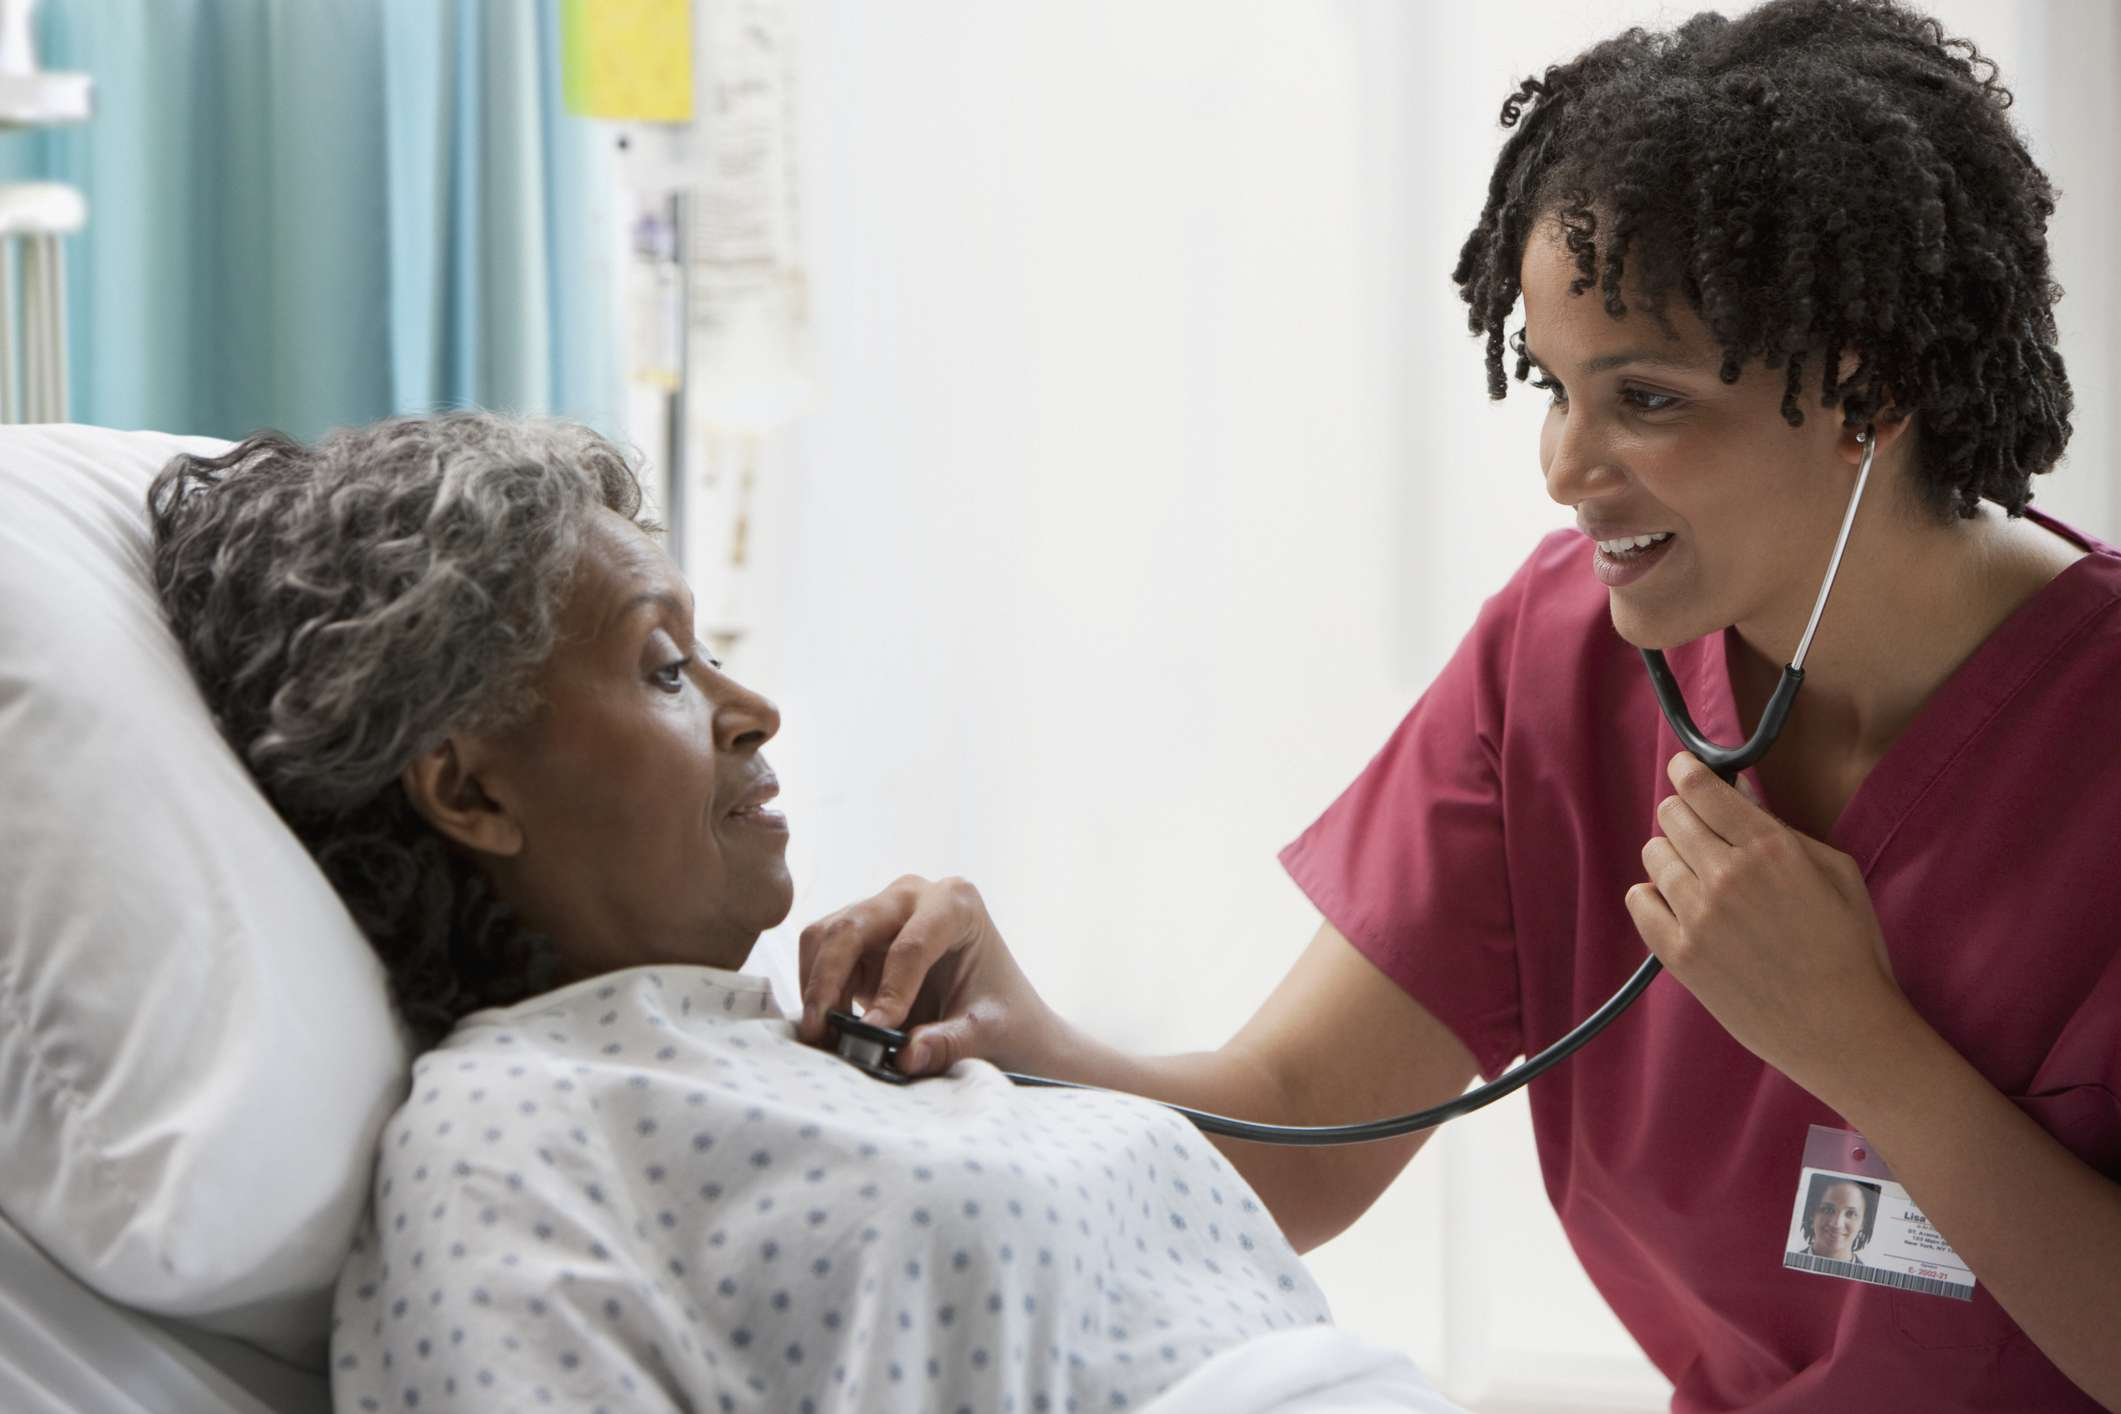 Nurse using stethoscope on hospital patient's chest and heart area